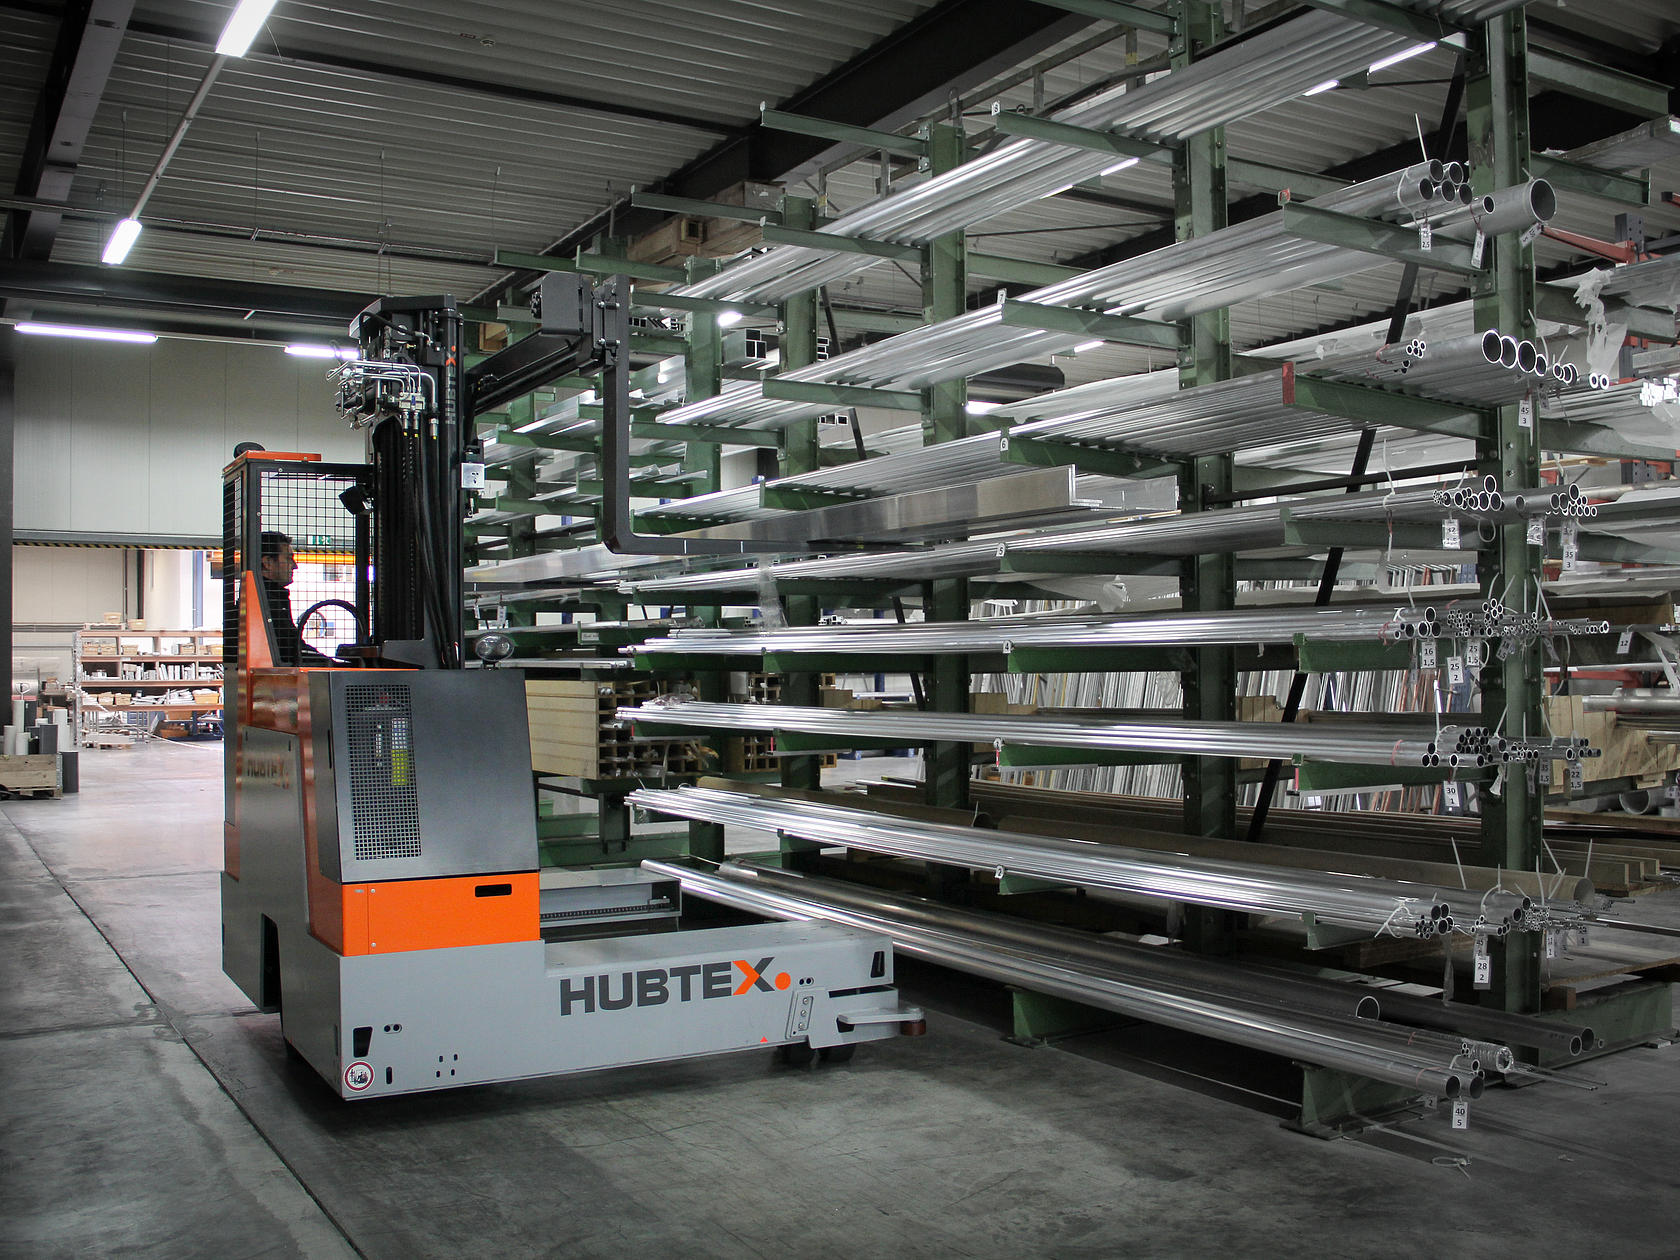 HUBTEX BasiX multidirectional sideloader picking up profiles